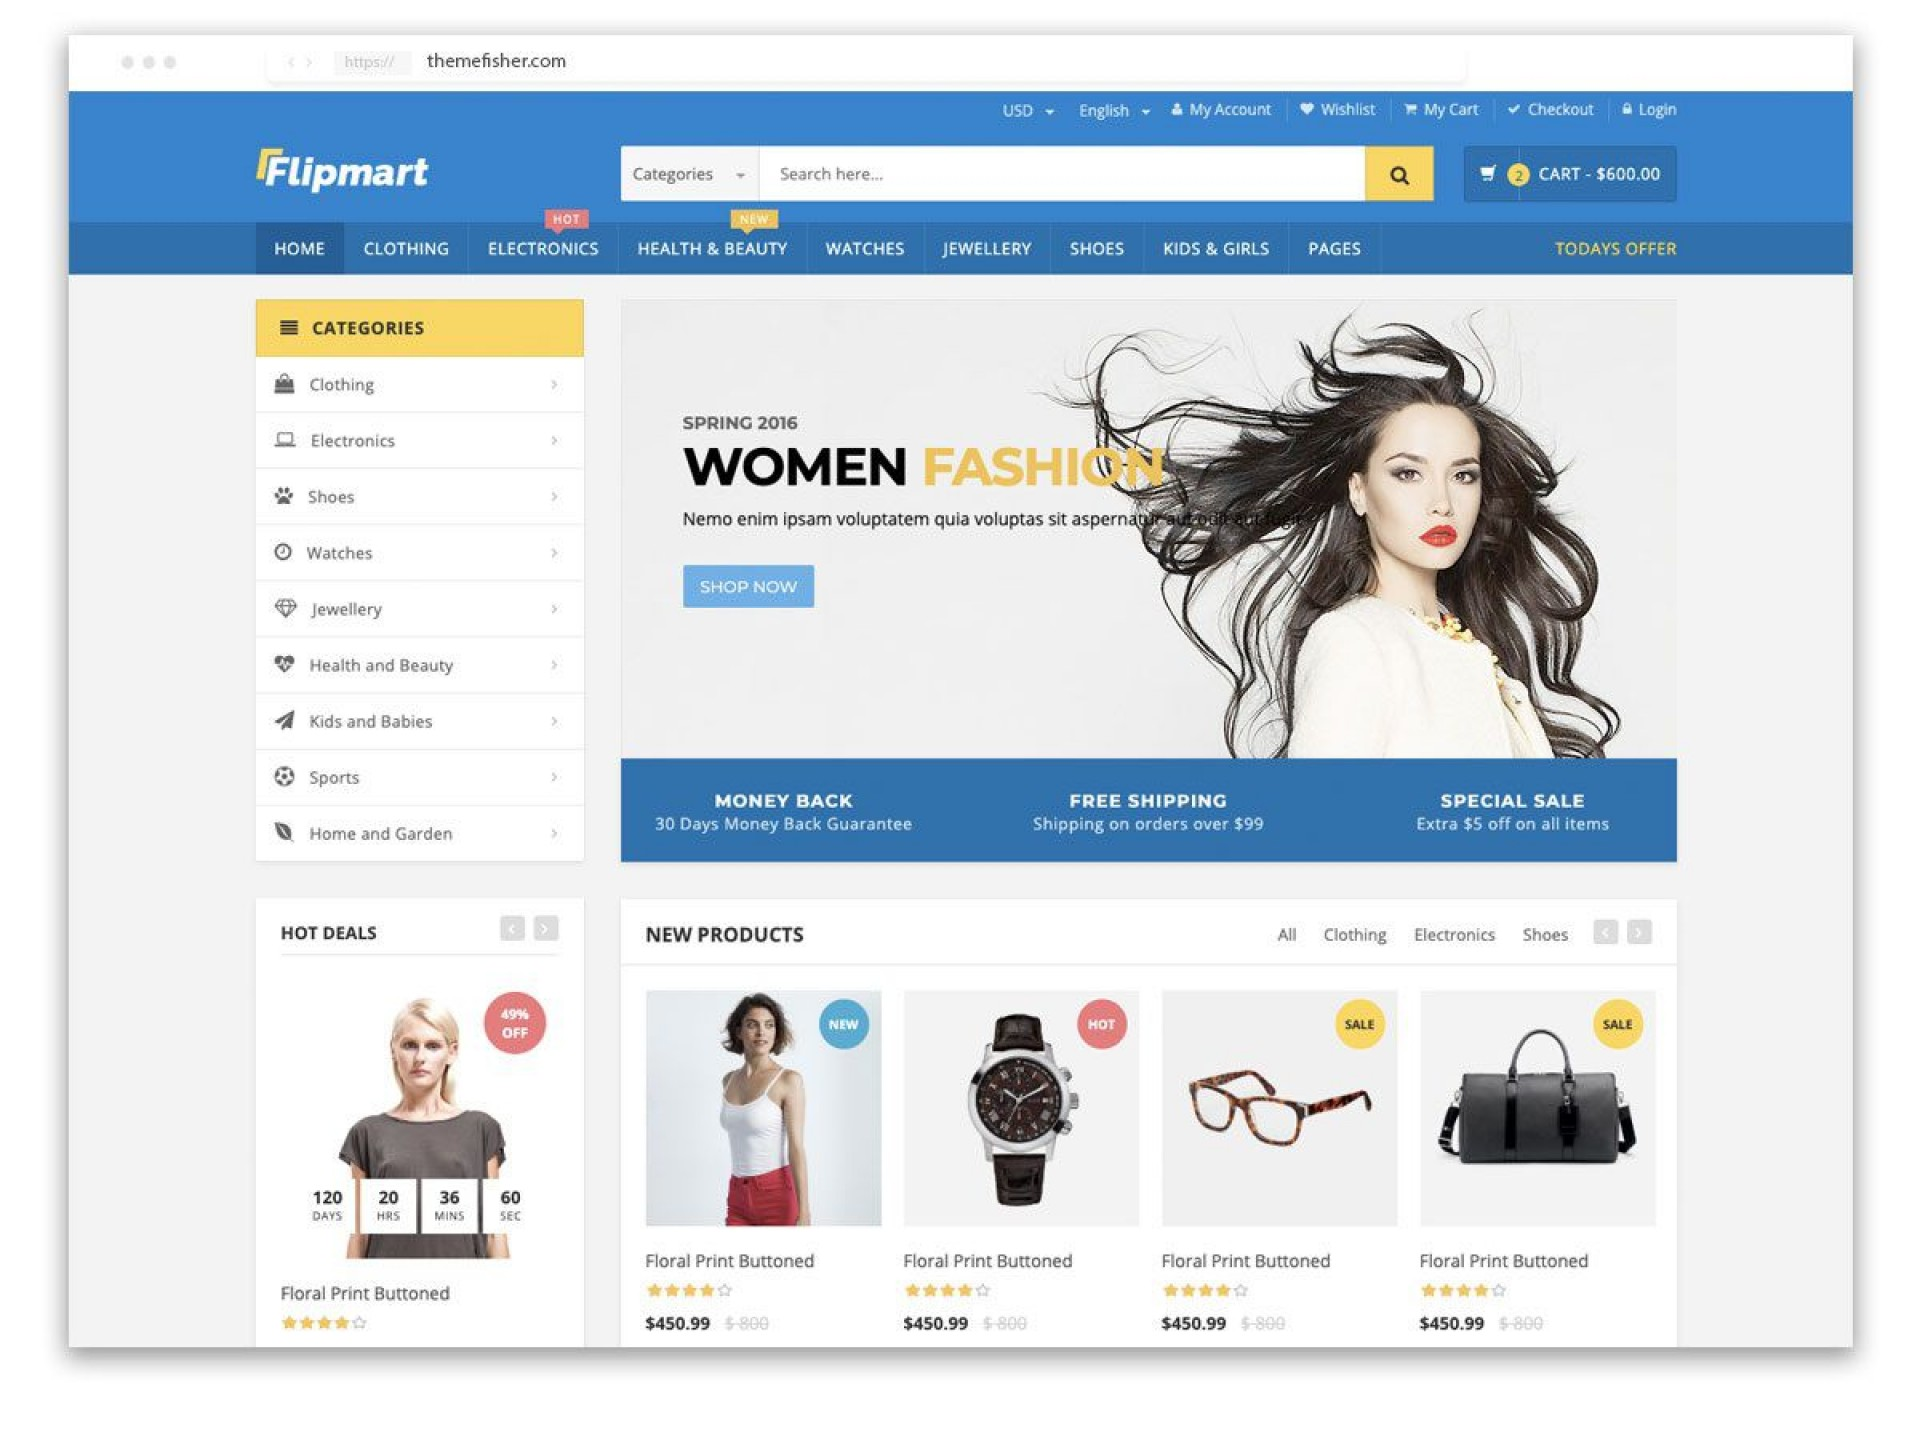 004 Exceptional Free Ecommerce Website Template Image  Templates Github For Blogger Shopping Cart Wordpres1920